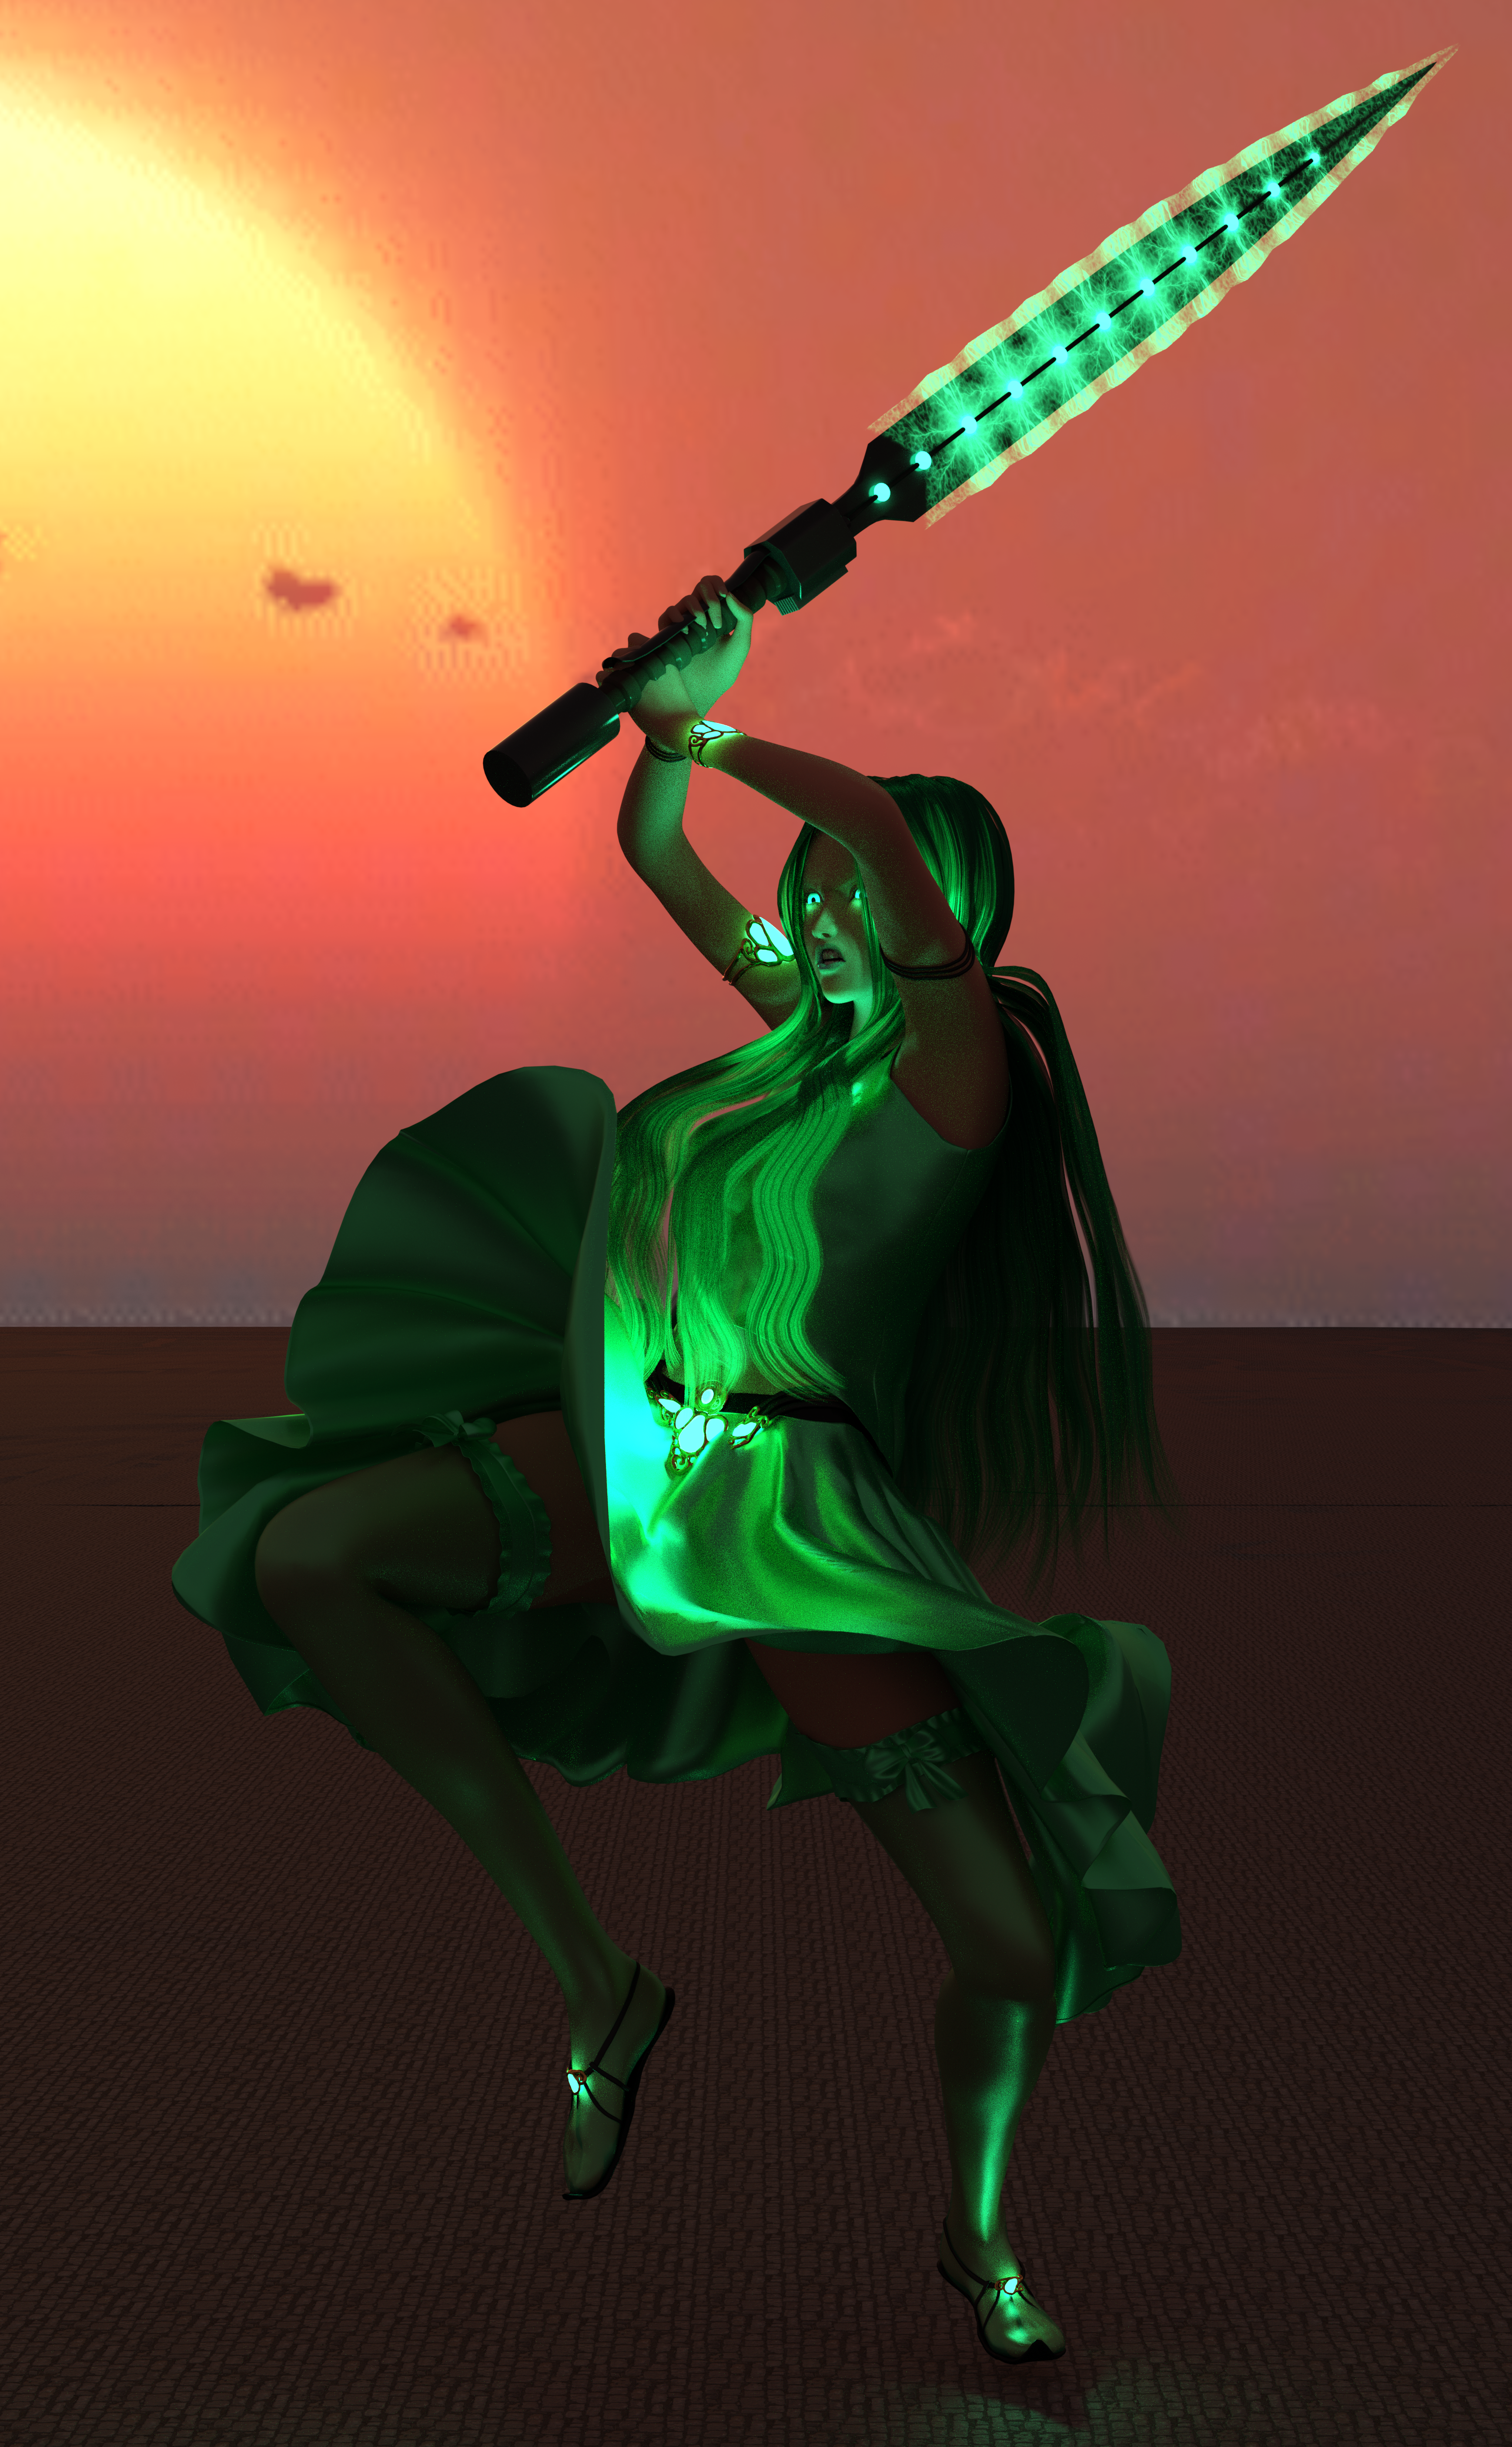 A woman with teal clothes, teal hair, a sword charged with teal magic, and glowing teal eyes!